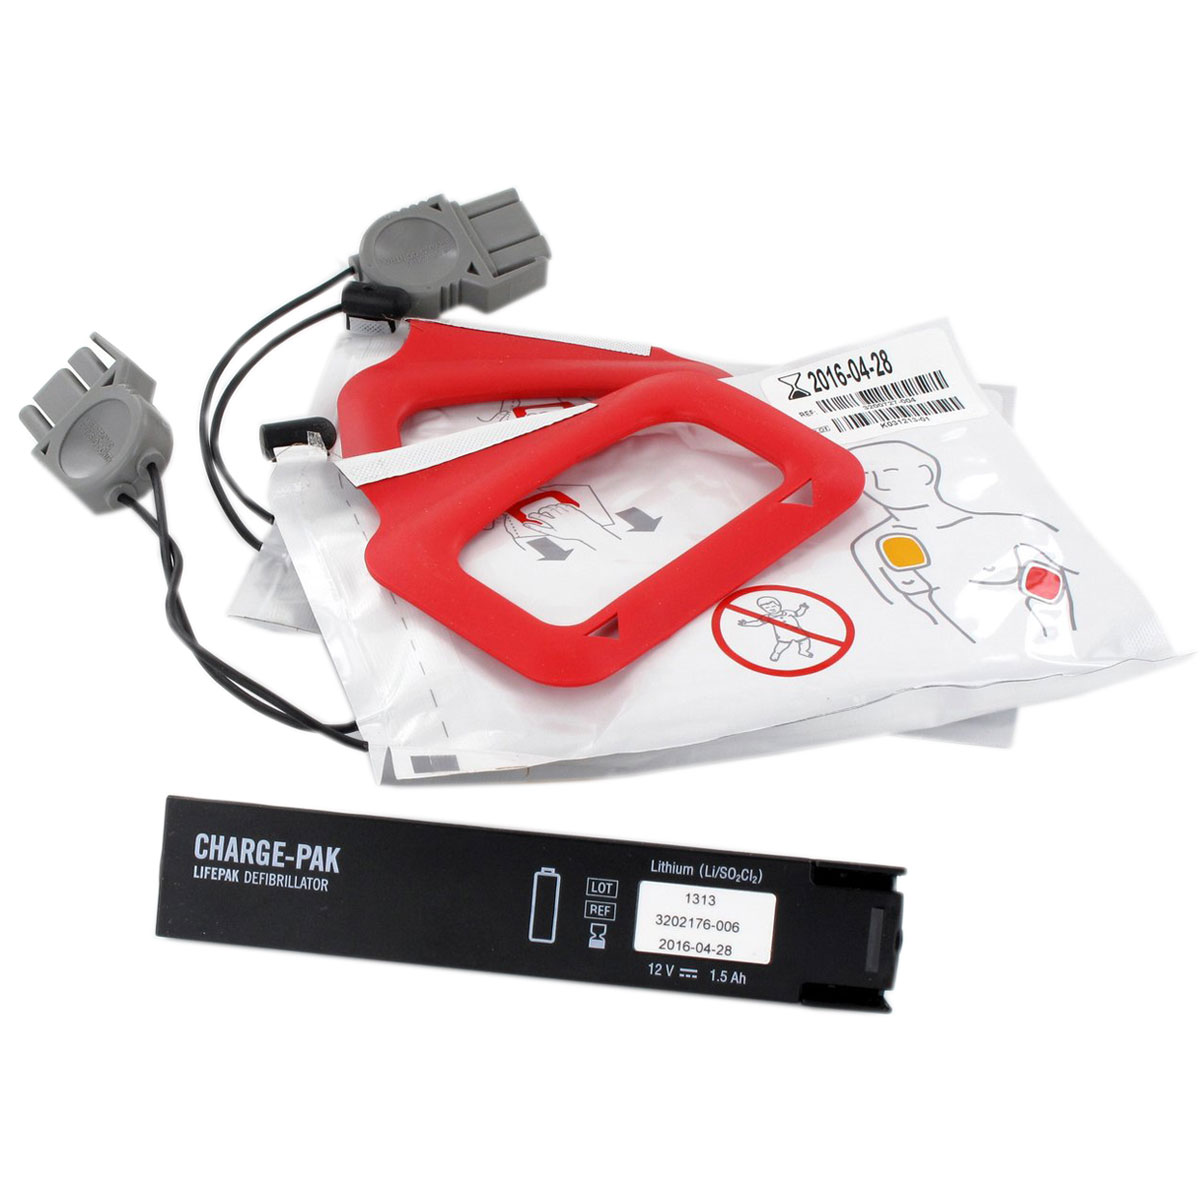 Physio-Control Lifepak® Replacement Kit for Charge-Pak™ Battery Charger with Two Sets of Electrodes